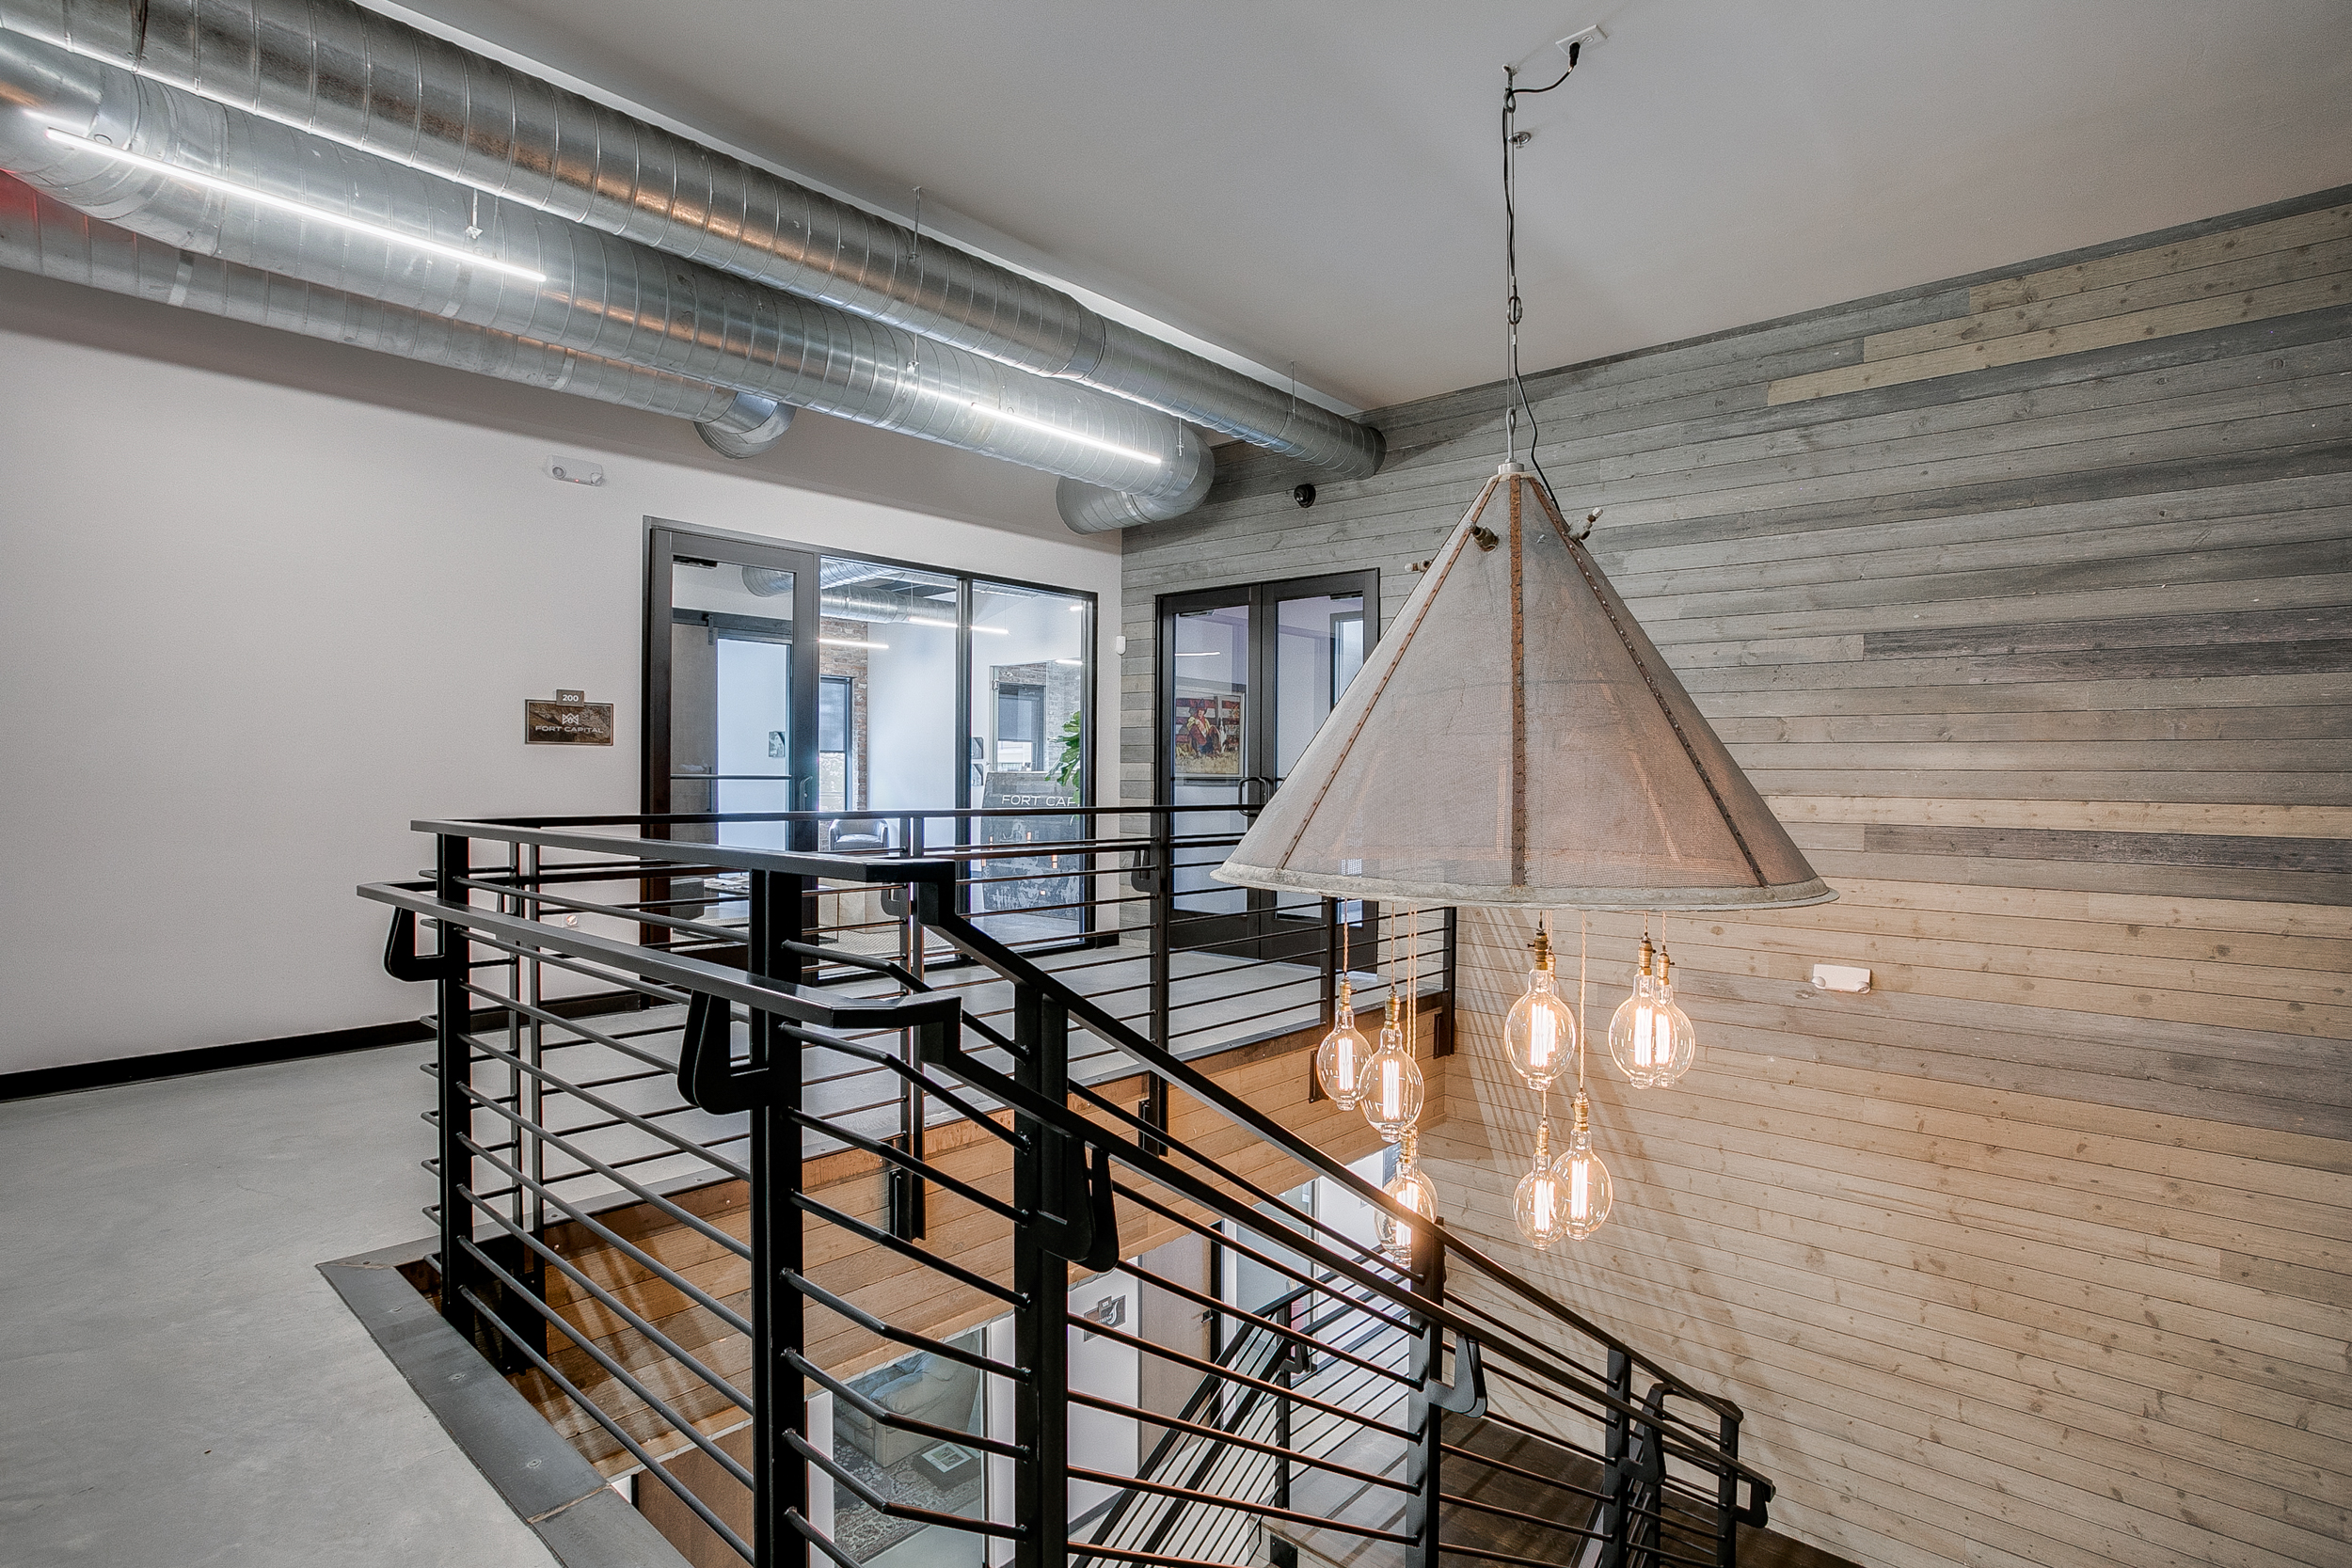 Top view of a black staircase, a wooden wall in the background, and a light fixture with dangling white light bulbs